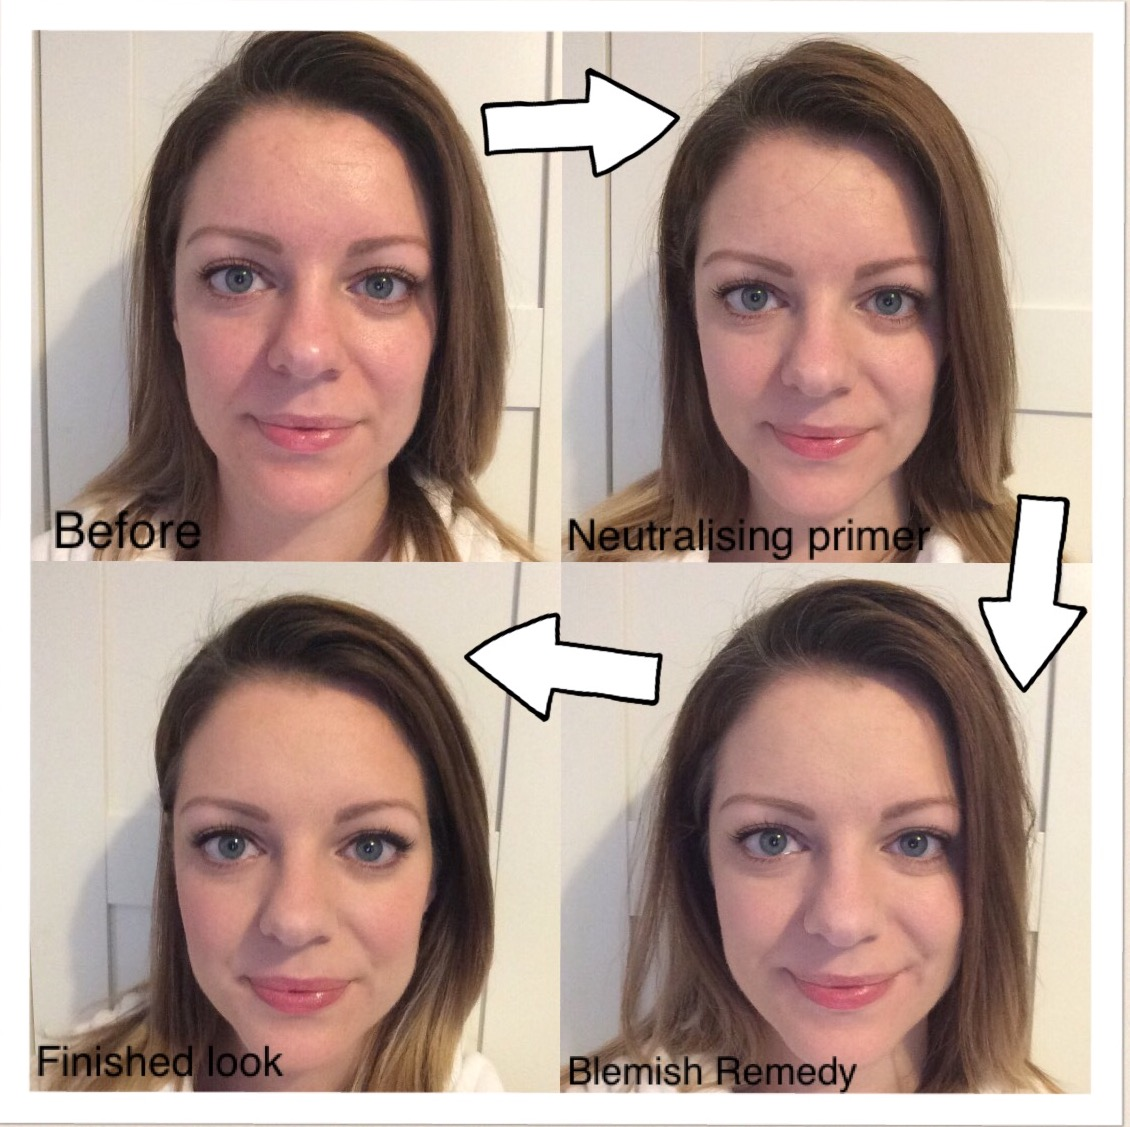 bare minerals before and after. bare minerals blemish remedy before and after a